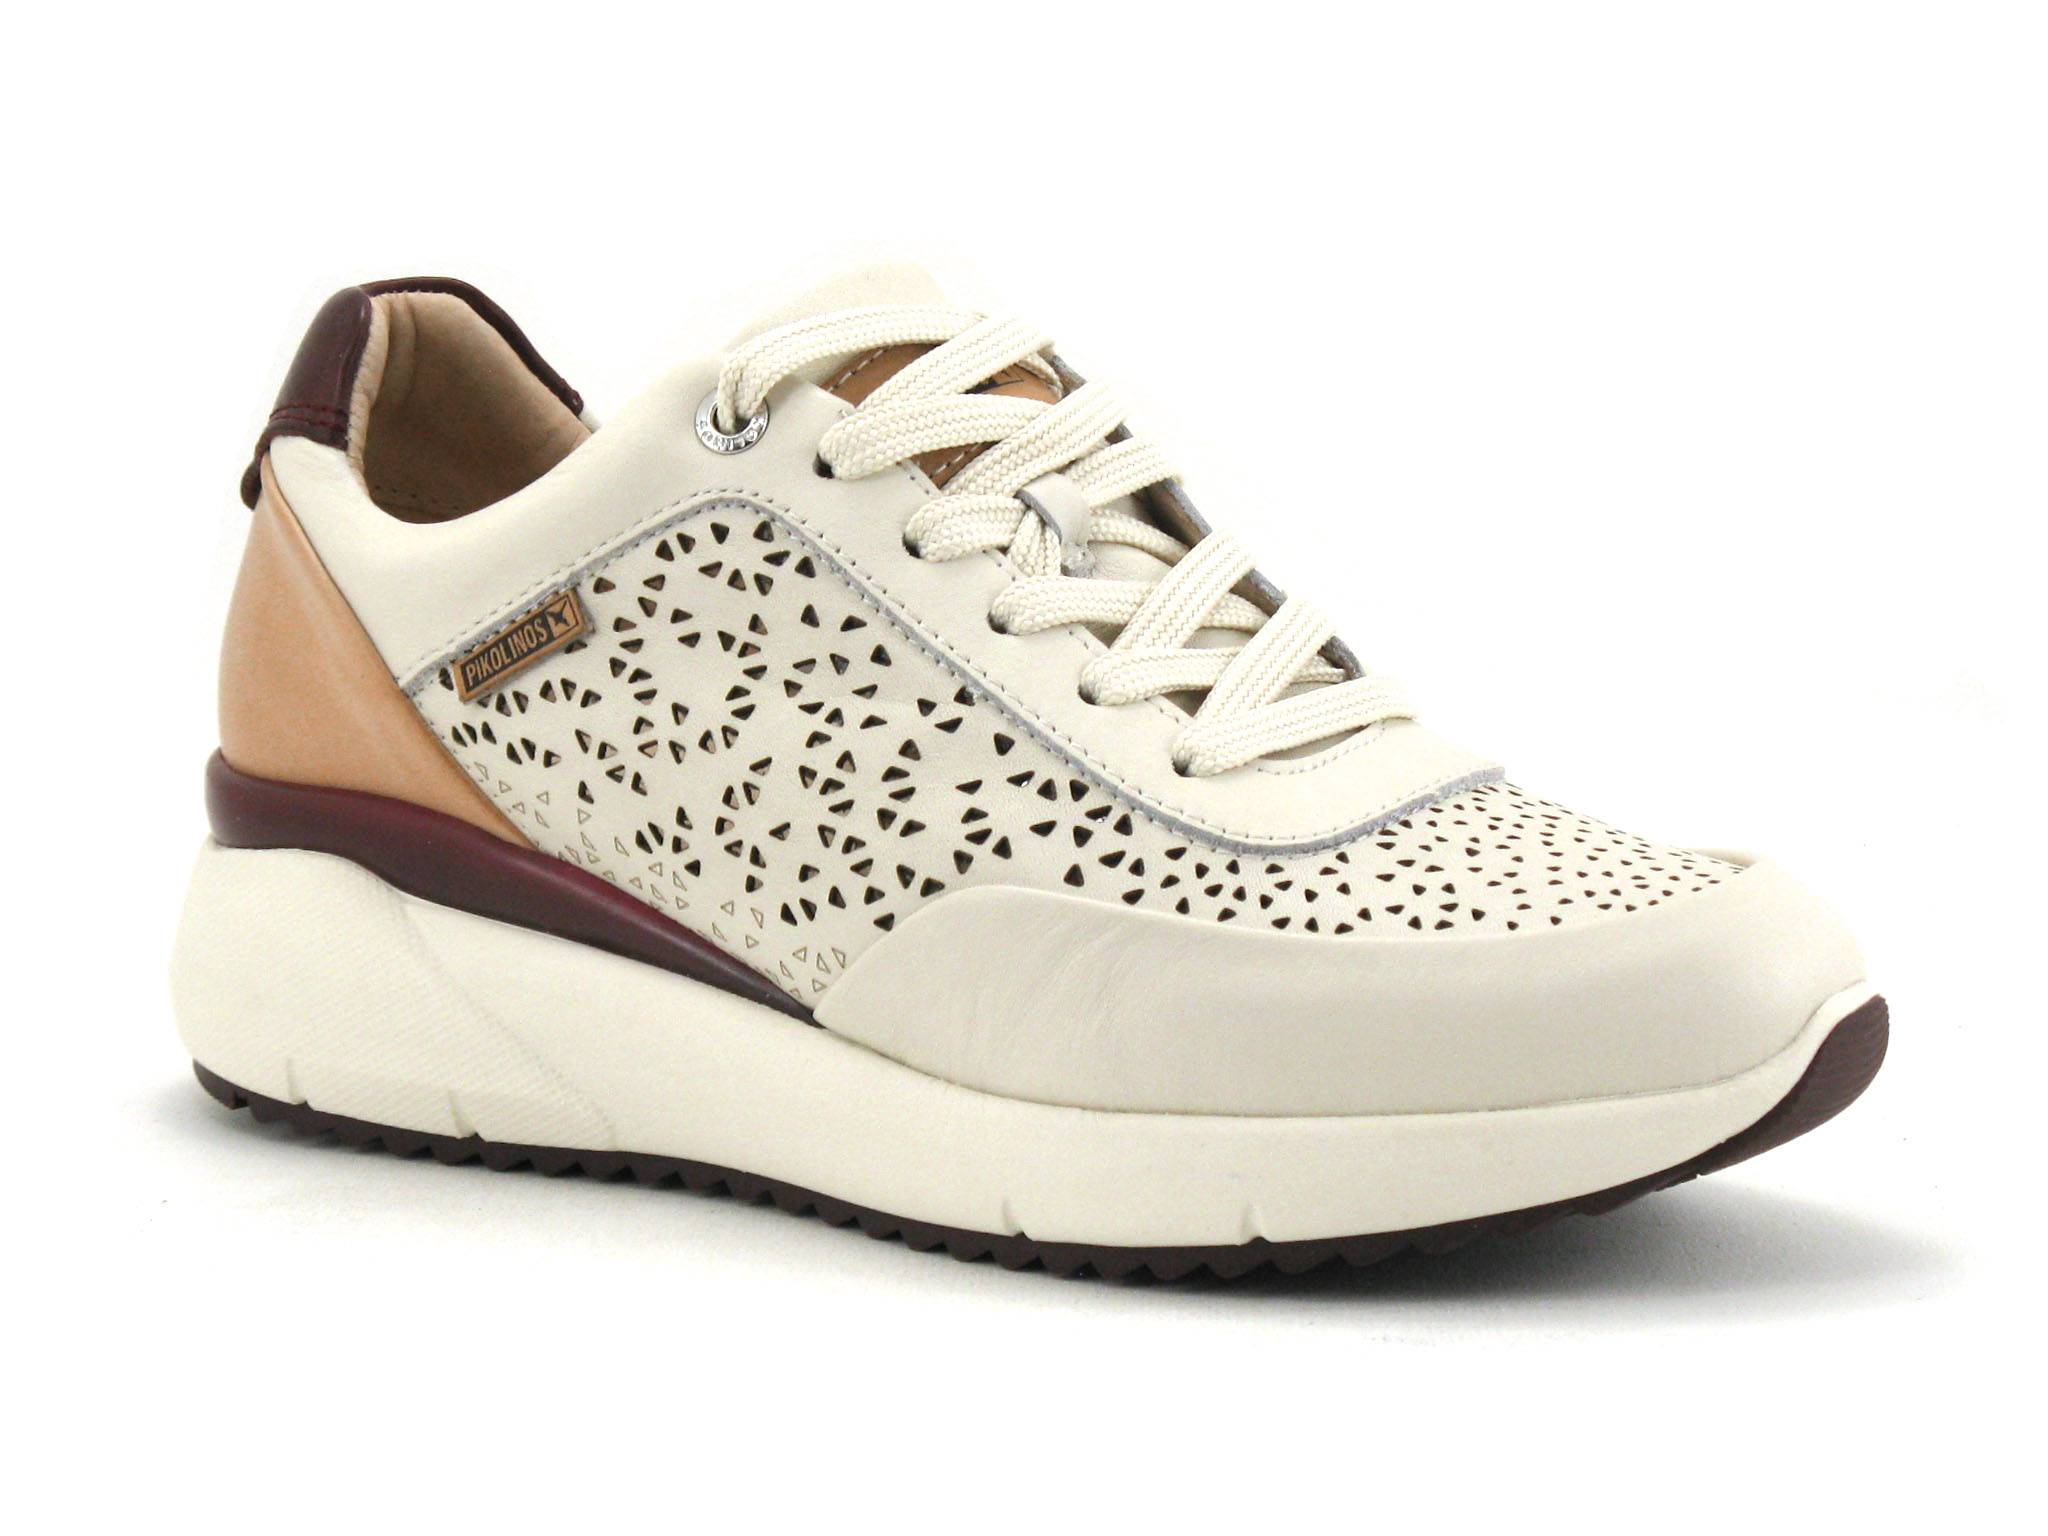 Pikolinos Basket Femme Pikolinos - Beige,Blanc,Bordeaux - Point. 36,37,38,39,40